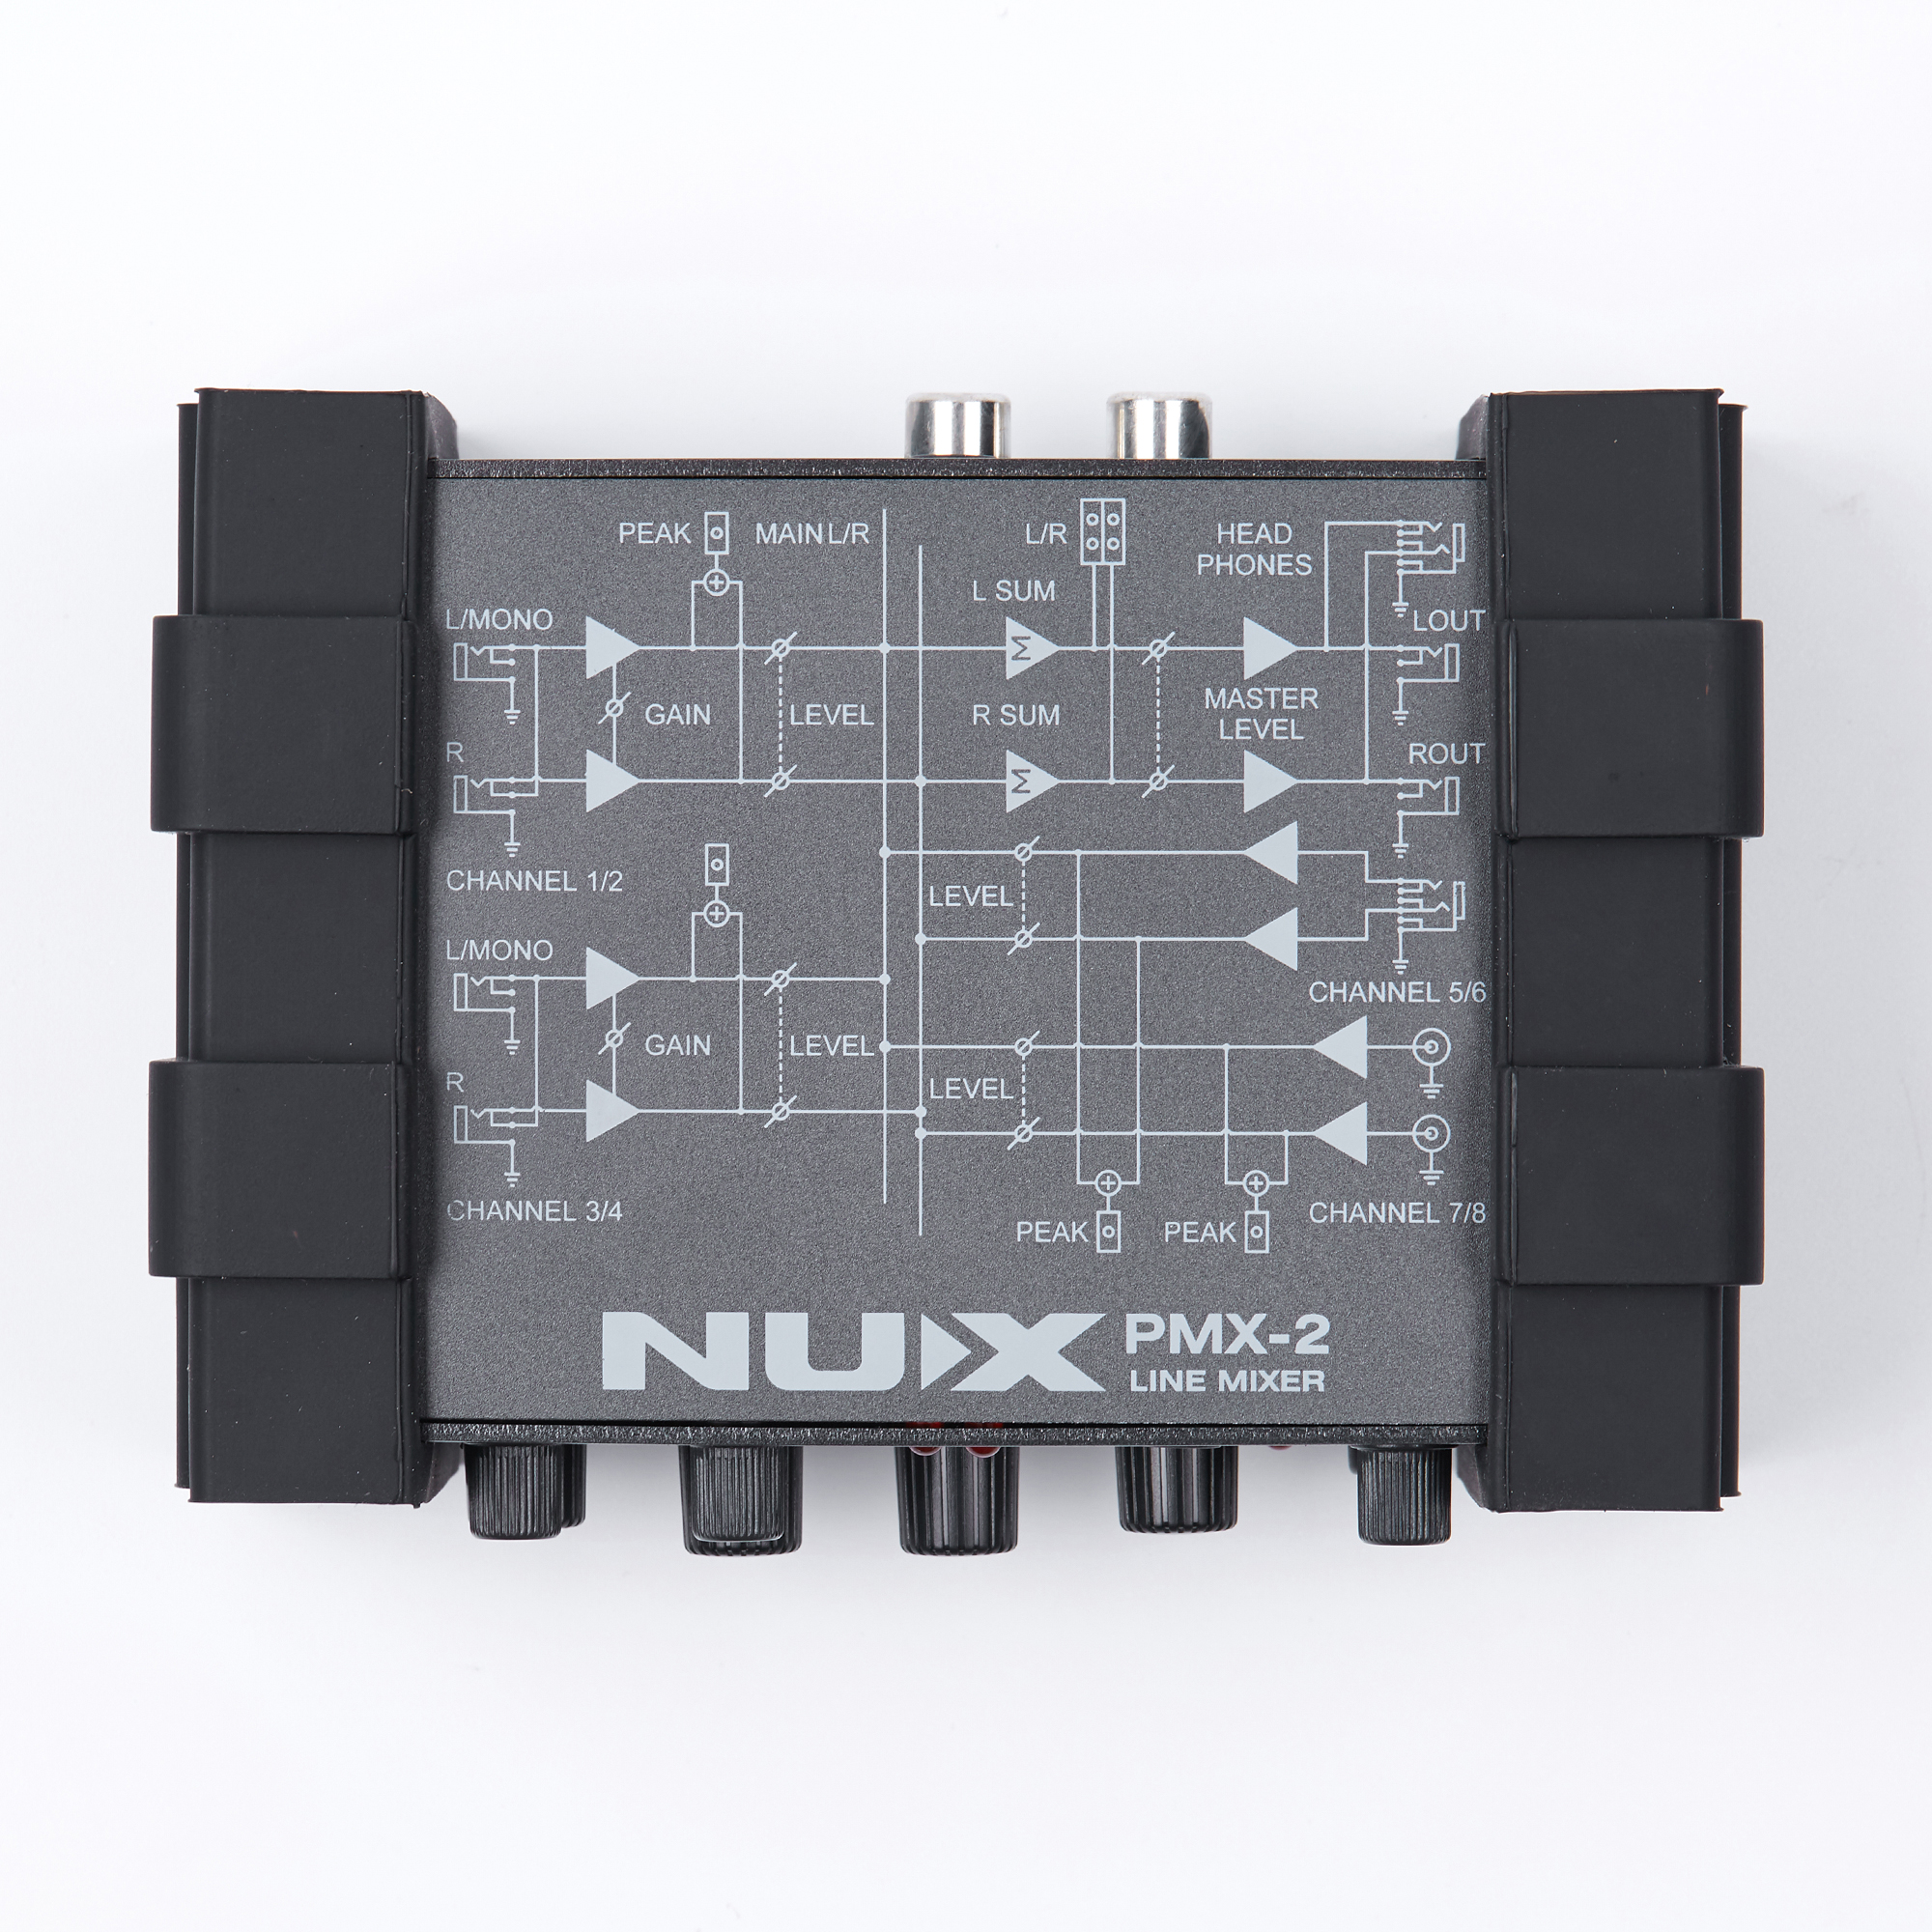 Gain Control 8 Inputs and 2 Outputs NUX PMX-2 Multi-Channel Mini Mixer 30 Musical Instruments Accessories for Guitar Bass Player удлинитель grinda 30м 8 43665 30